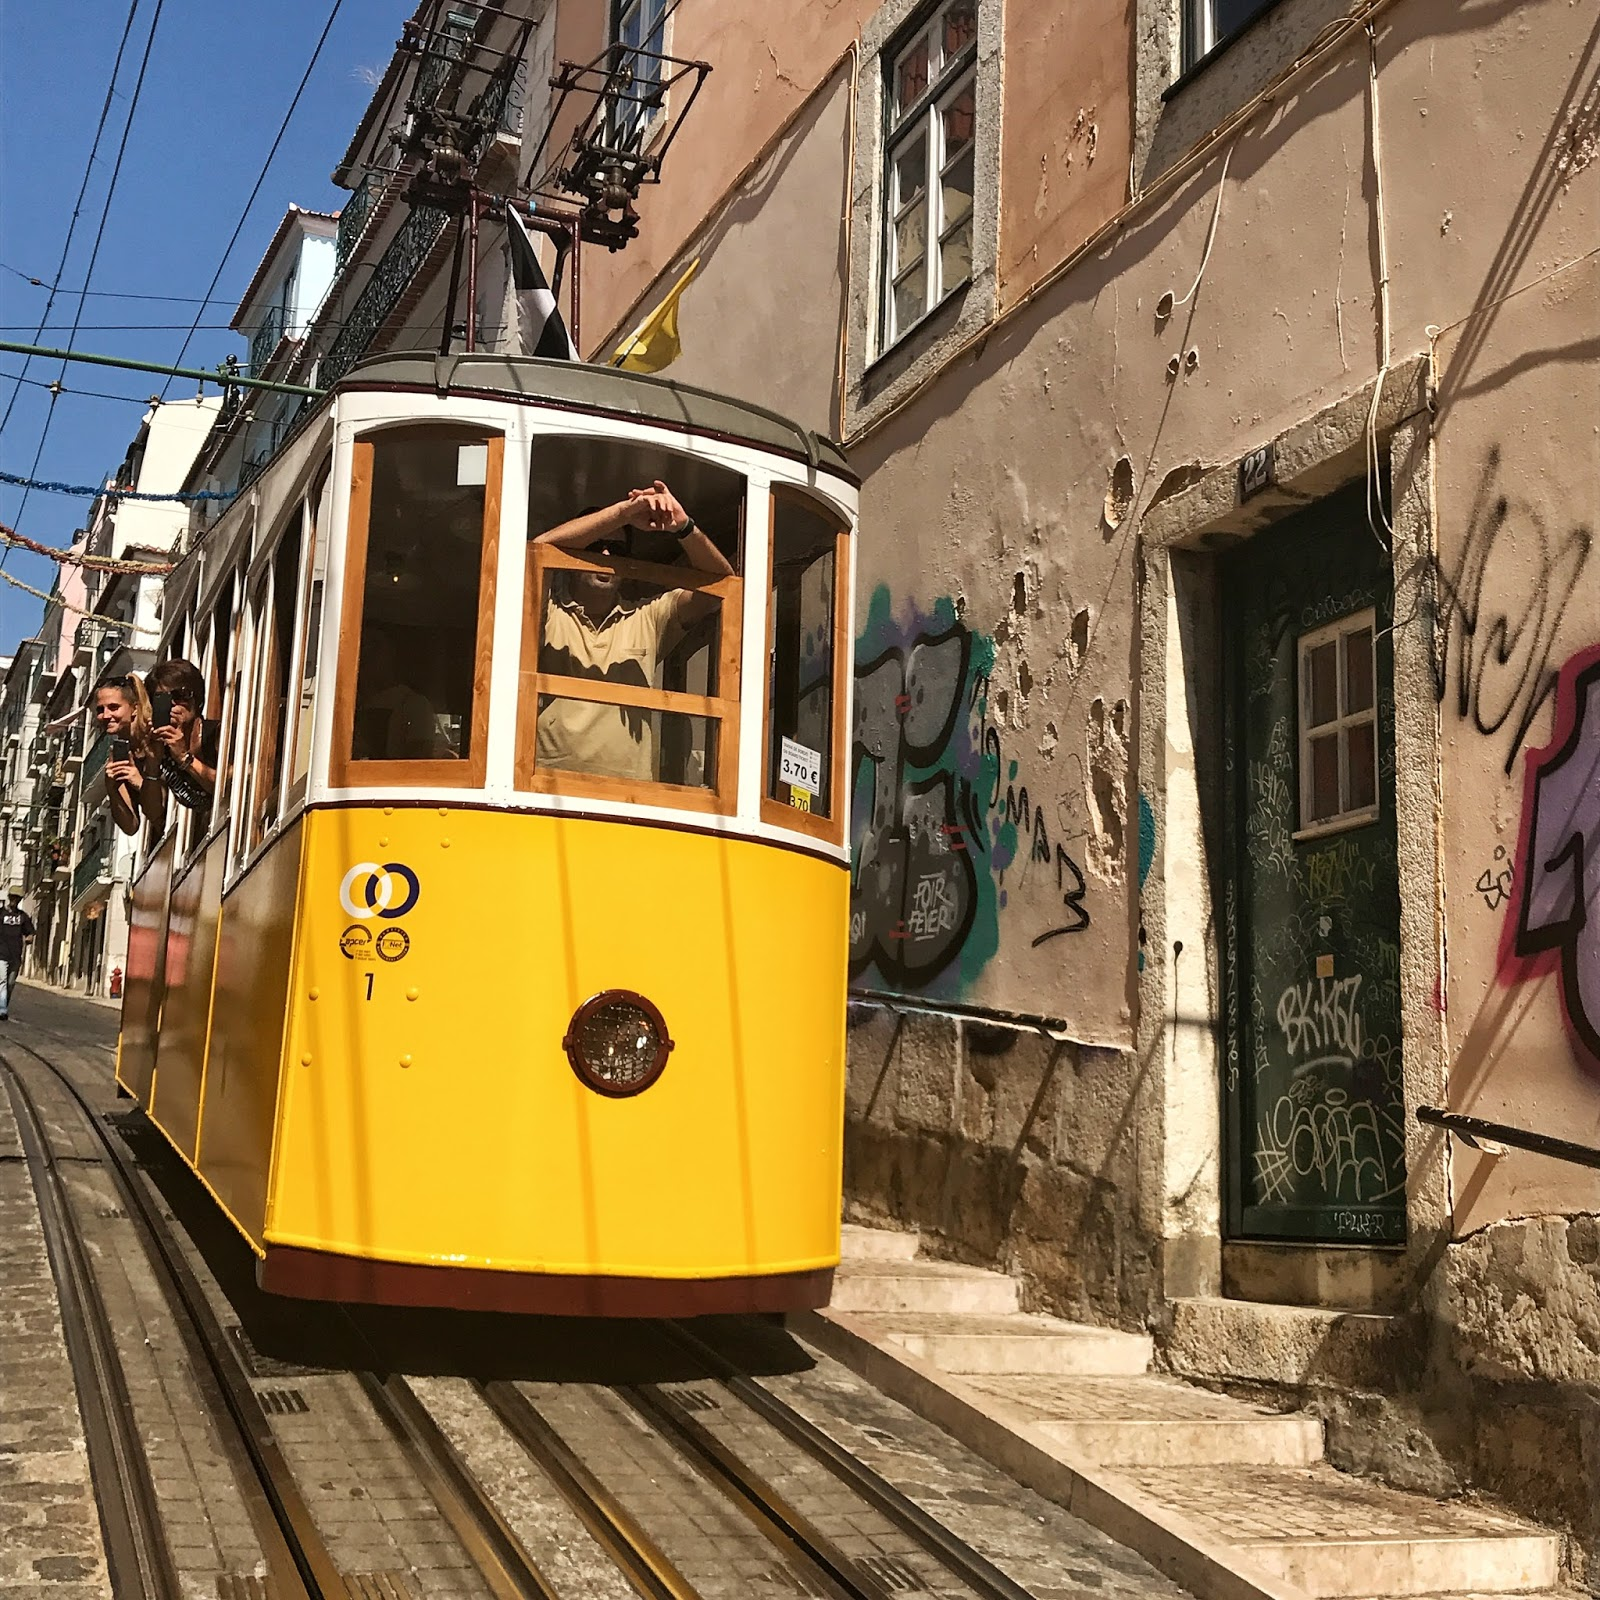 Elevador Da Bica - One of Lisbon's best Instagram photo locations